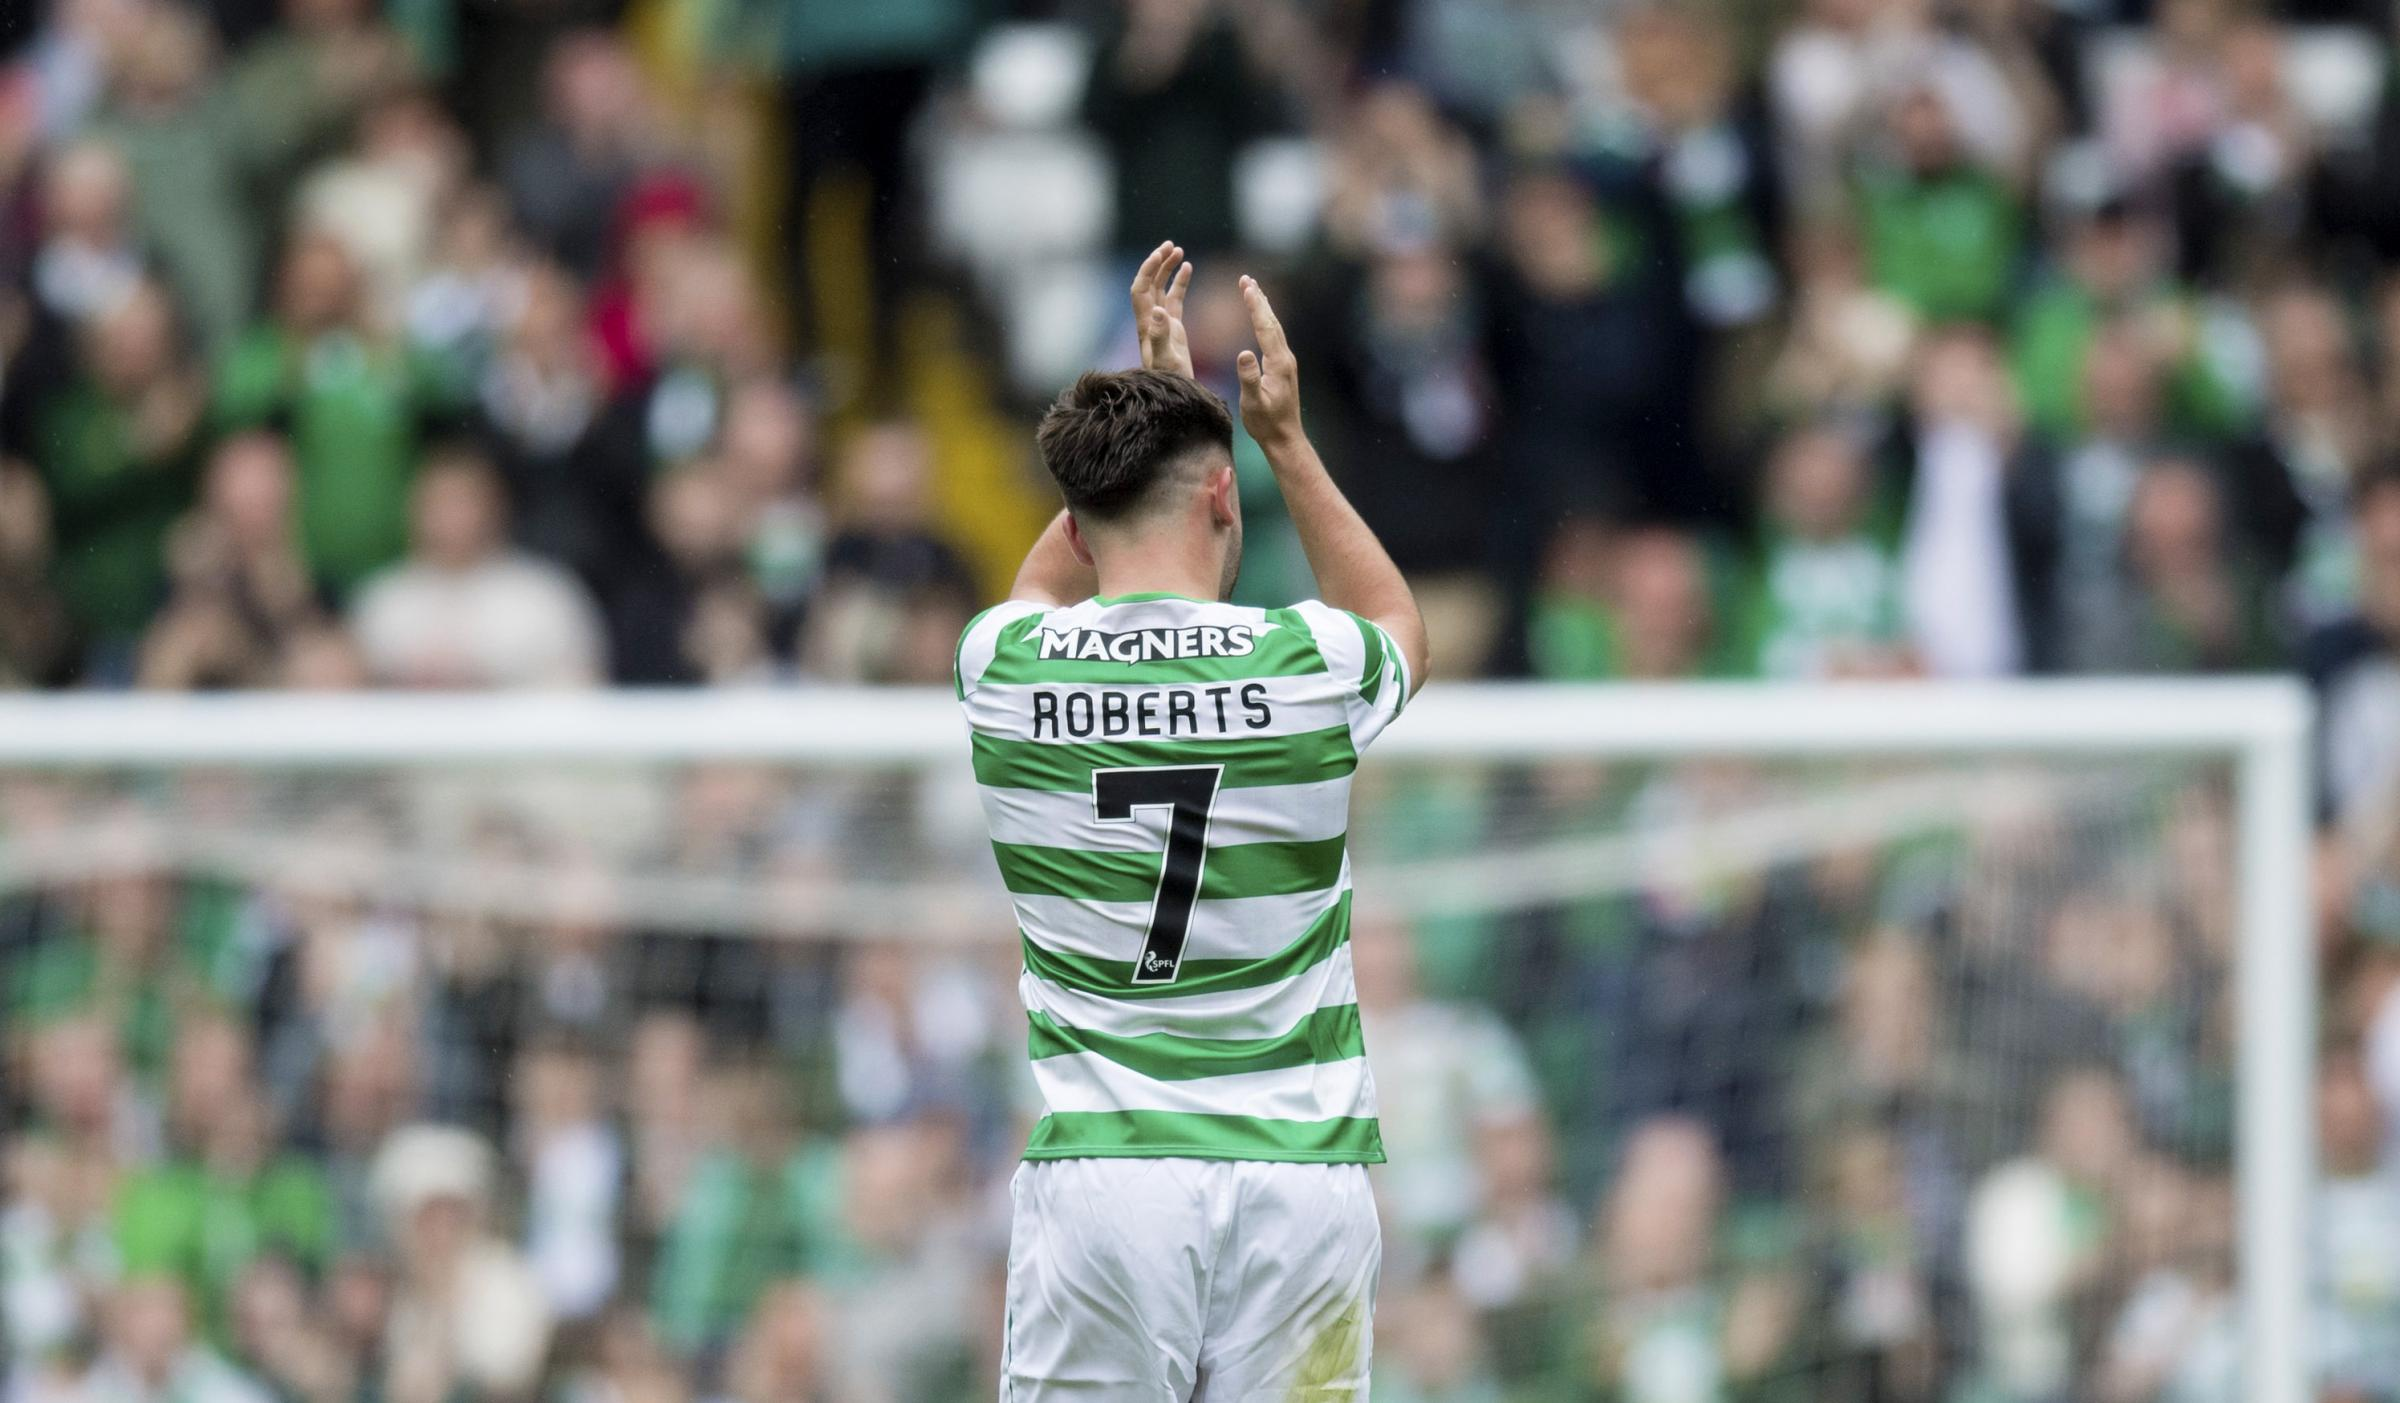 Patrick Roberts is set for a loan spell to Girona